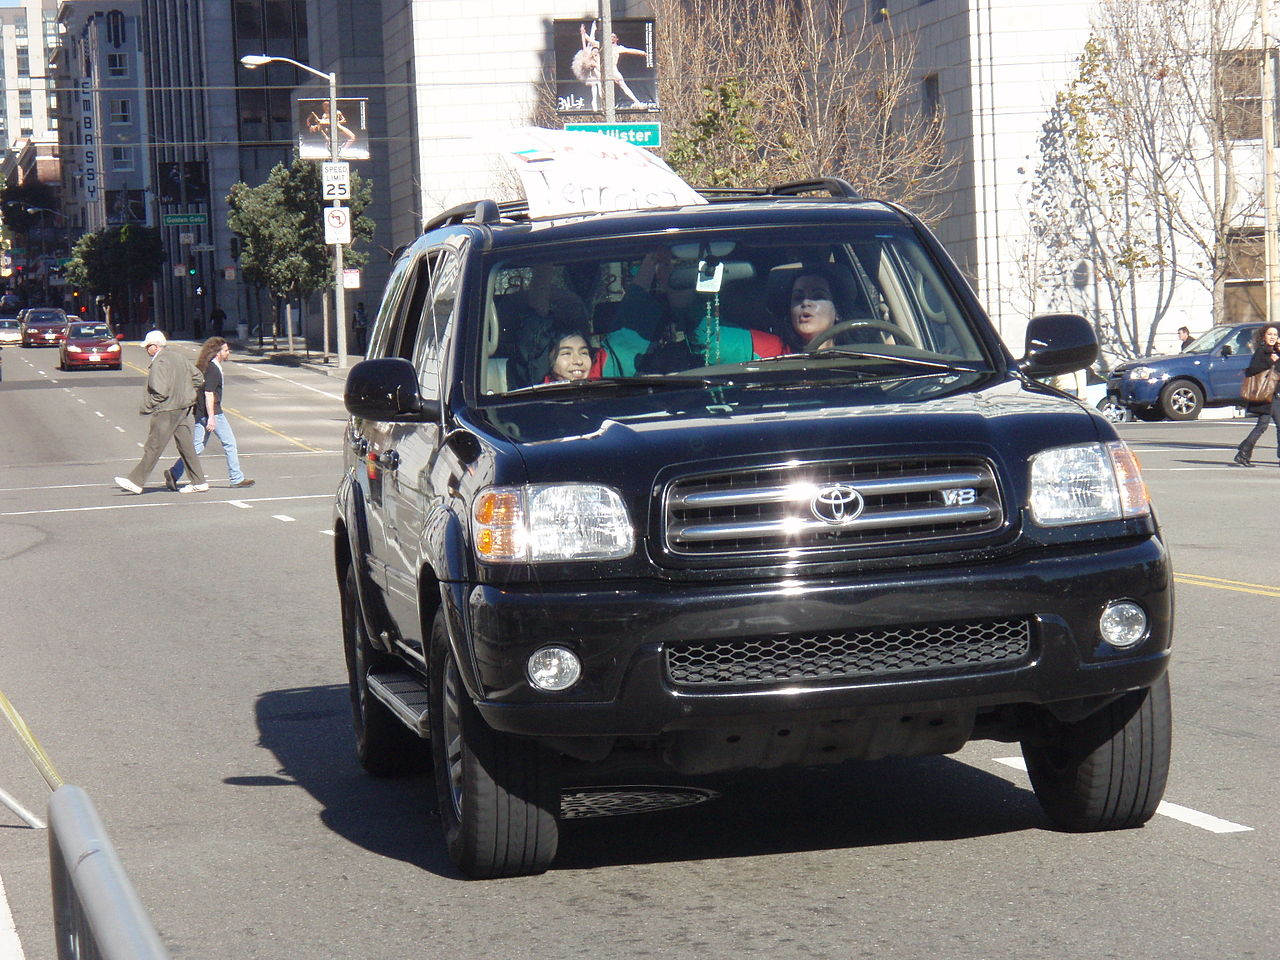 1280px-Hamas_supporter_driving_the_car_with_kids